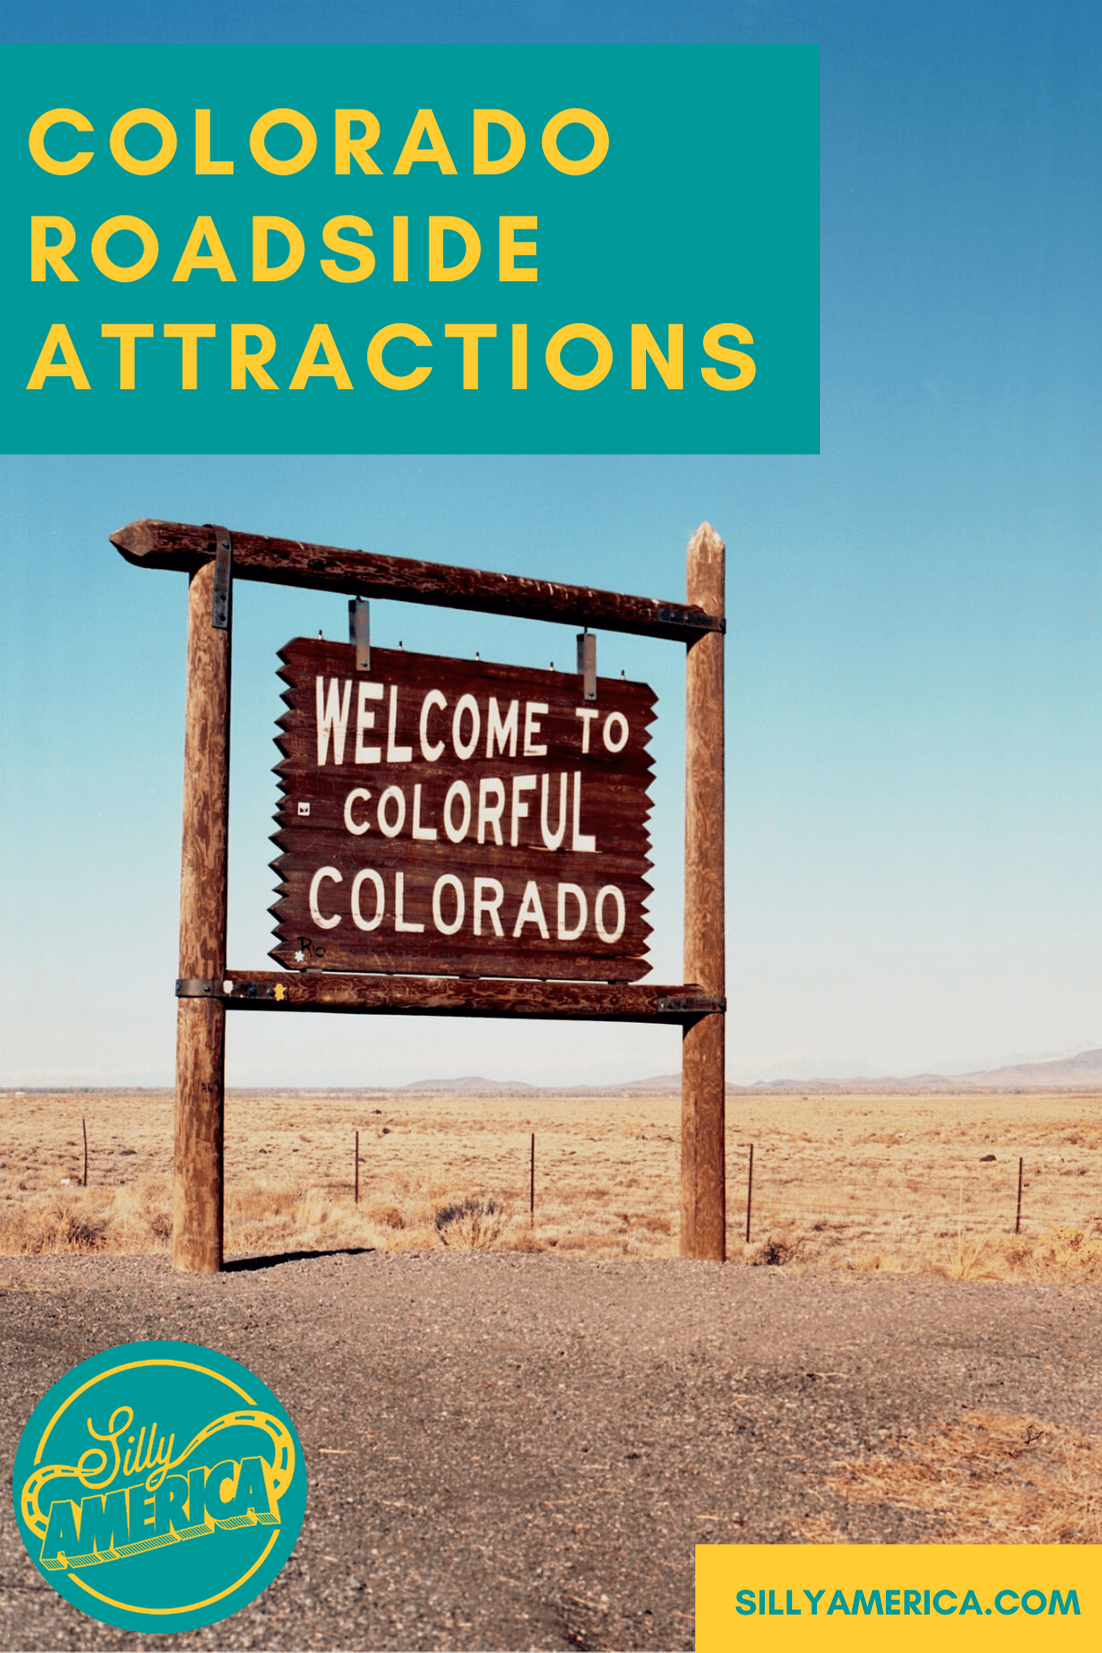 The best Colorado roadside attractions to visit on a Colorado road trip. Add these roadside oddities to your travel bucket list, itinerary, or route map! Weird roadside attractions and fun road trip stops for kids or adults in Denver and beyond. #ColoradoRoadsideAttractions #ColoradoRoadsideAttraction #RoadsideAttractions #RoadsideAttraction #ColoradoRoadTrip #ColoradoSummerRoadTrip #ColoradoRoadTripMap #ColoradoRoadTripItinerary #ColoradoWinterRoadTrip #WeirdRoadsideAttractions